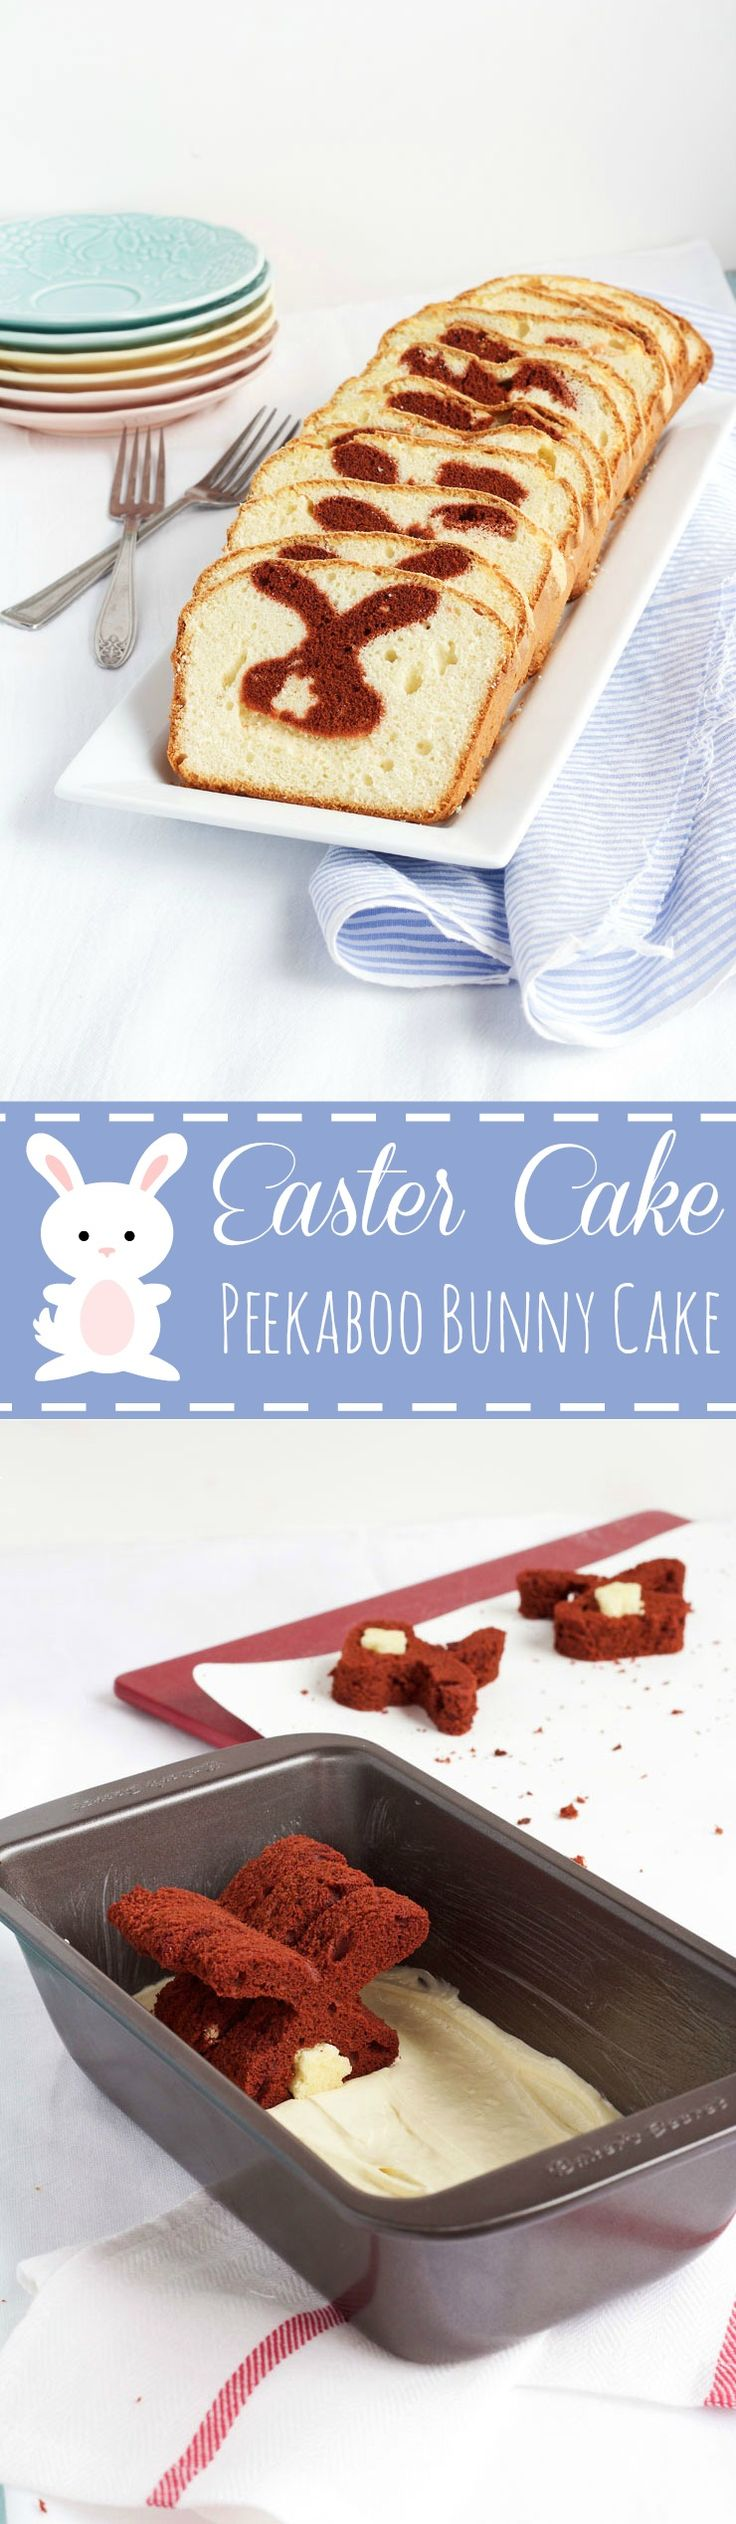 Make this Simple Easter Cake - A Peekaboo Pound Cake with a Bunny Inside www.thebearfootbaker.com